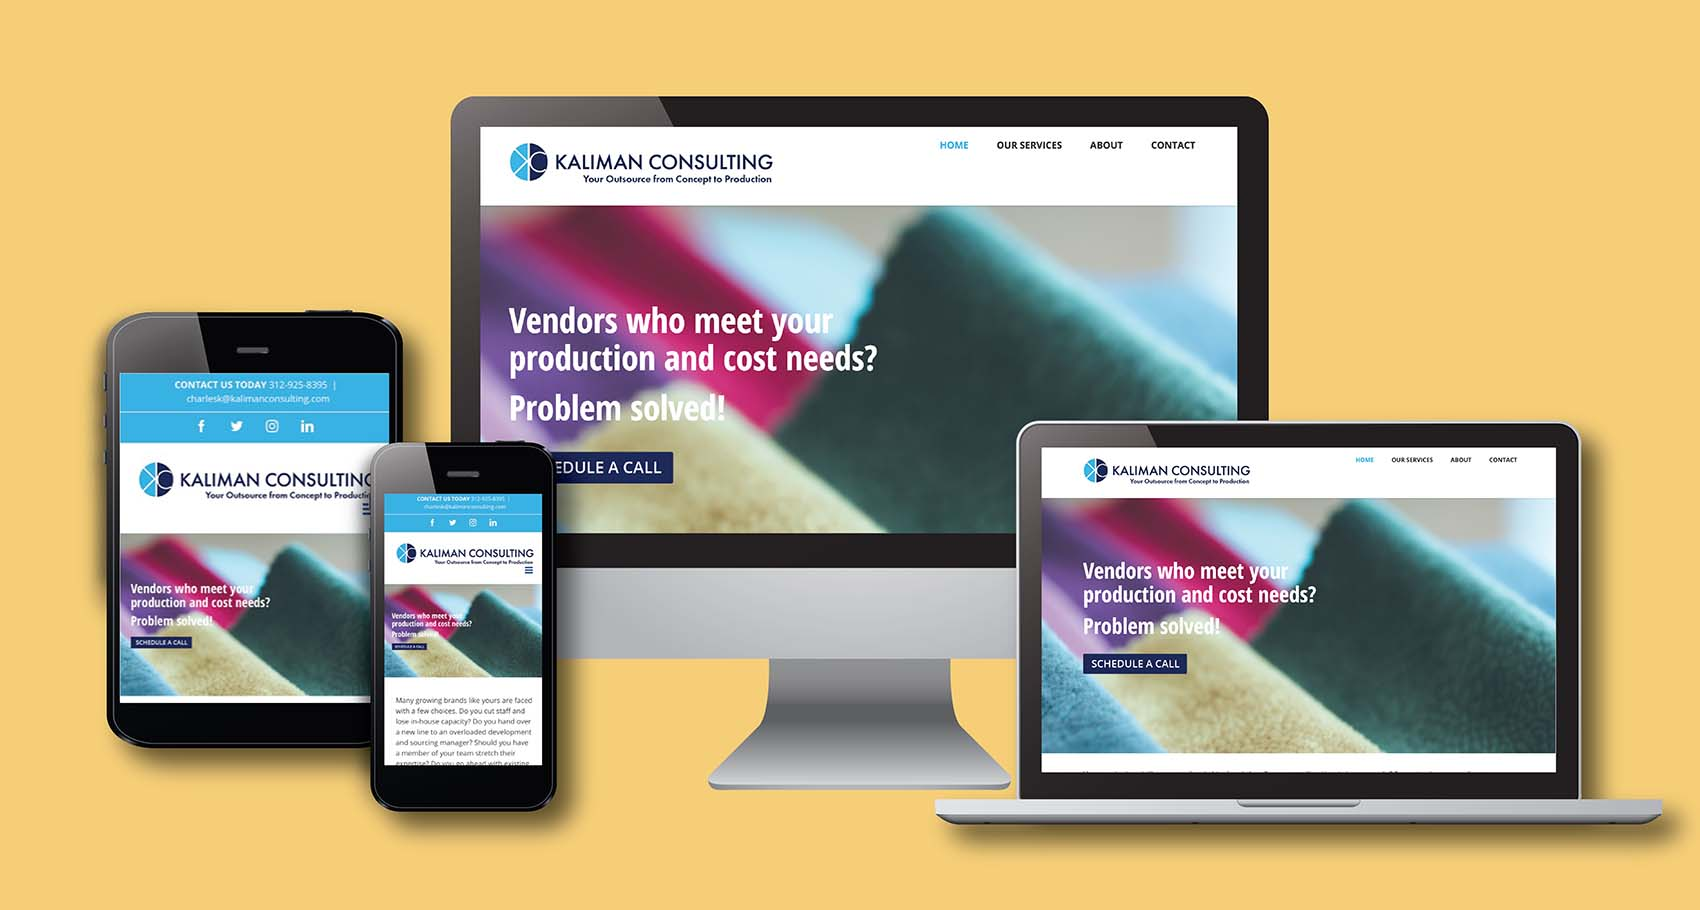 Kaliman Consulting Website Design on Multiple Devices